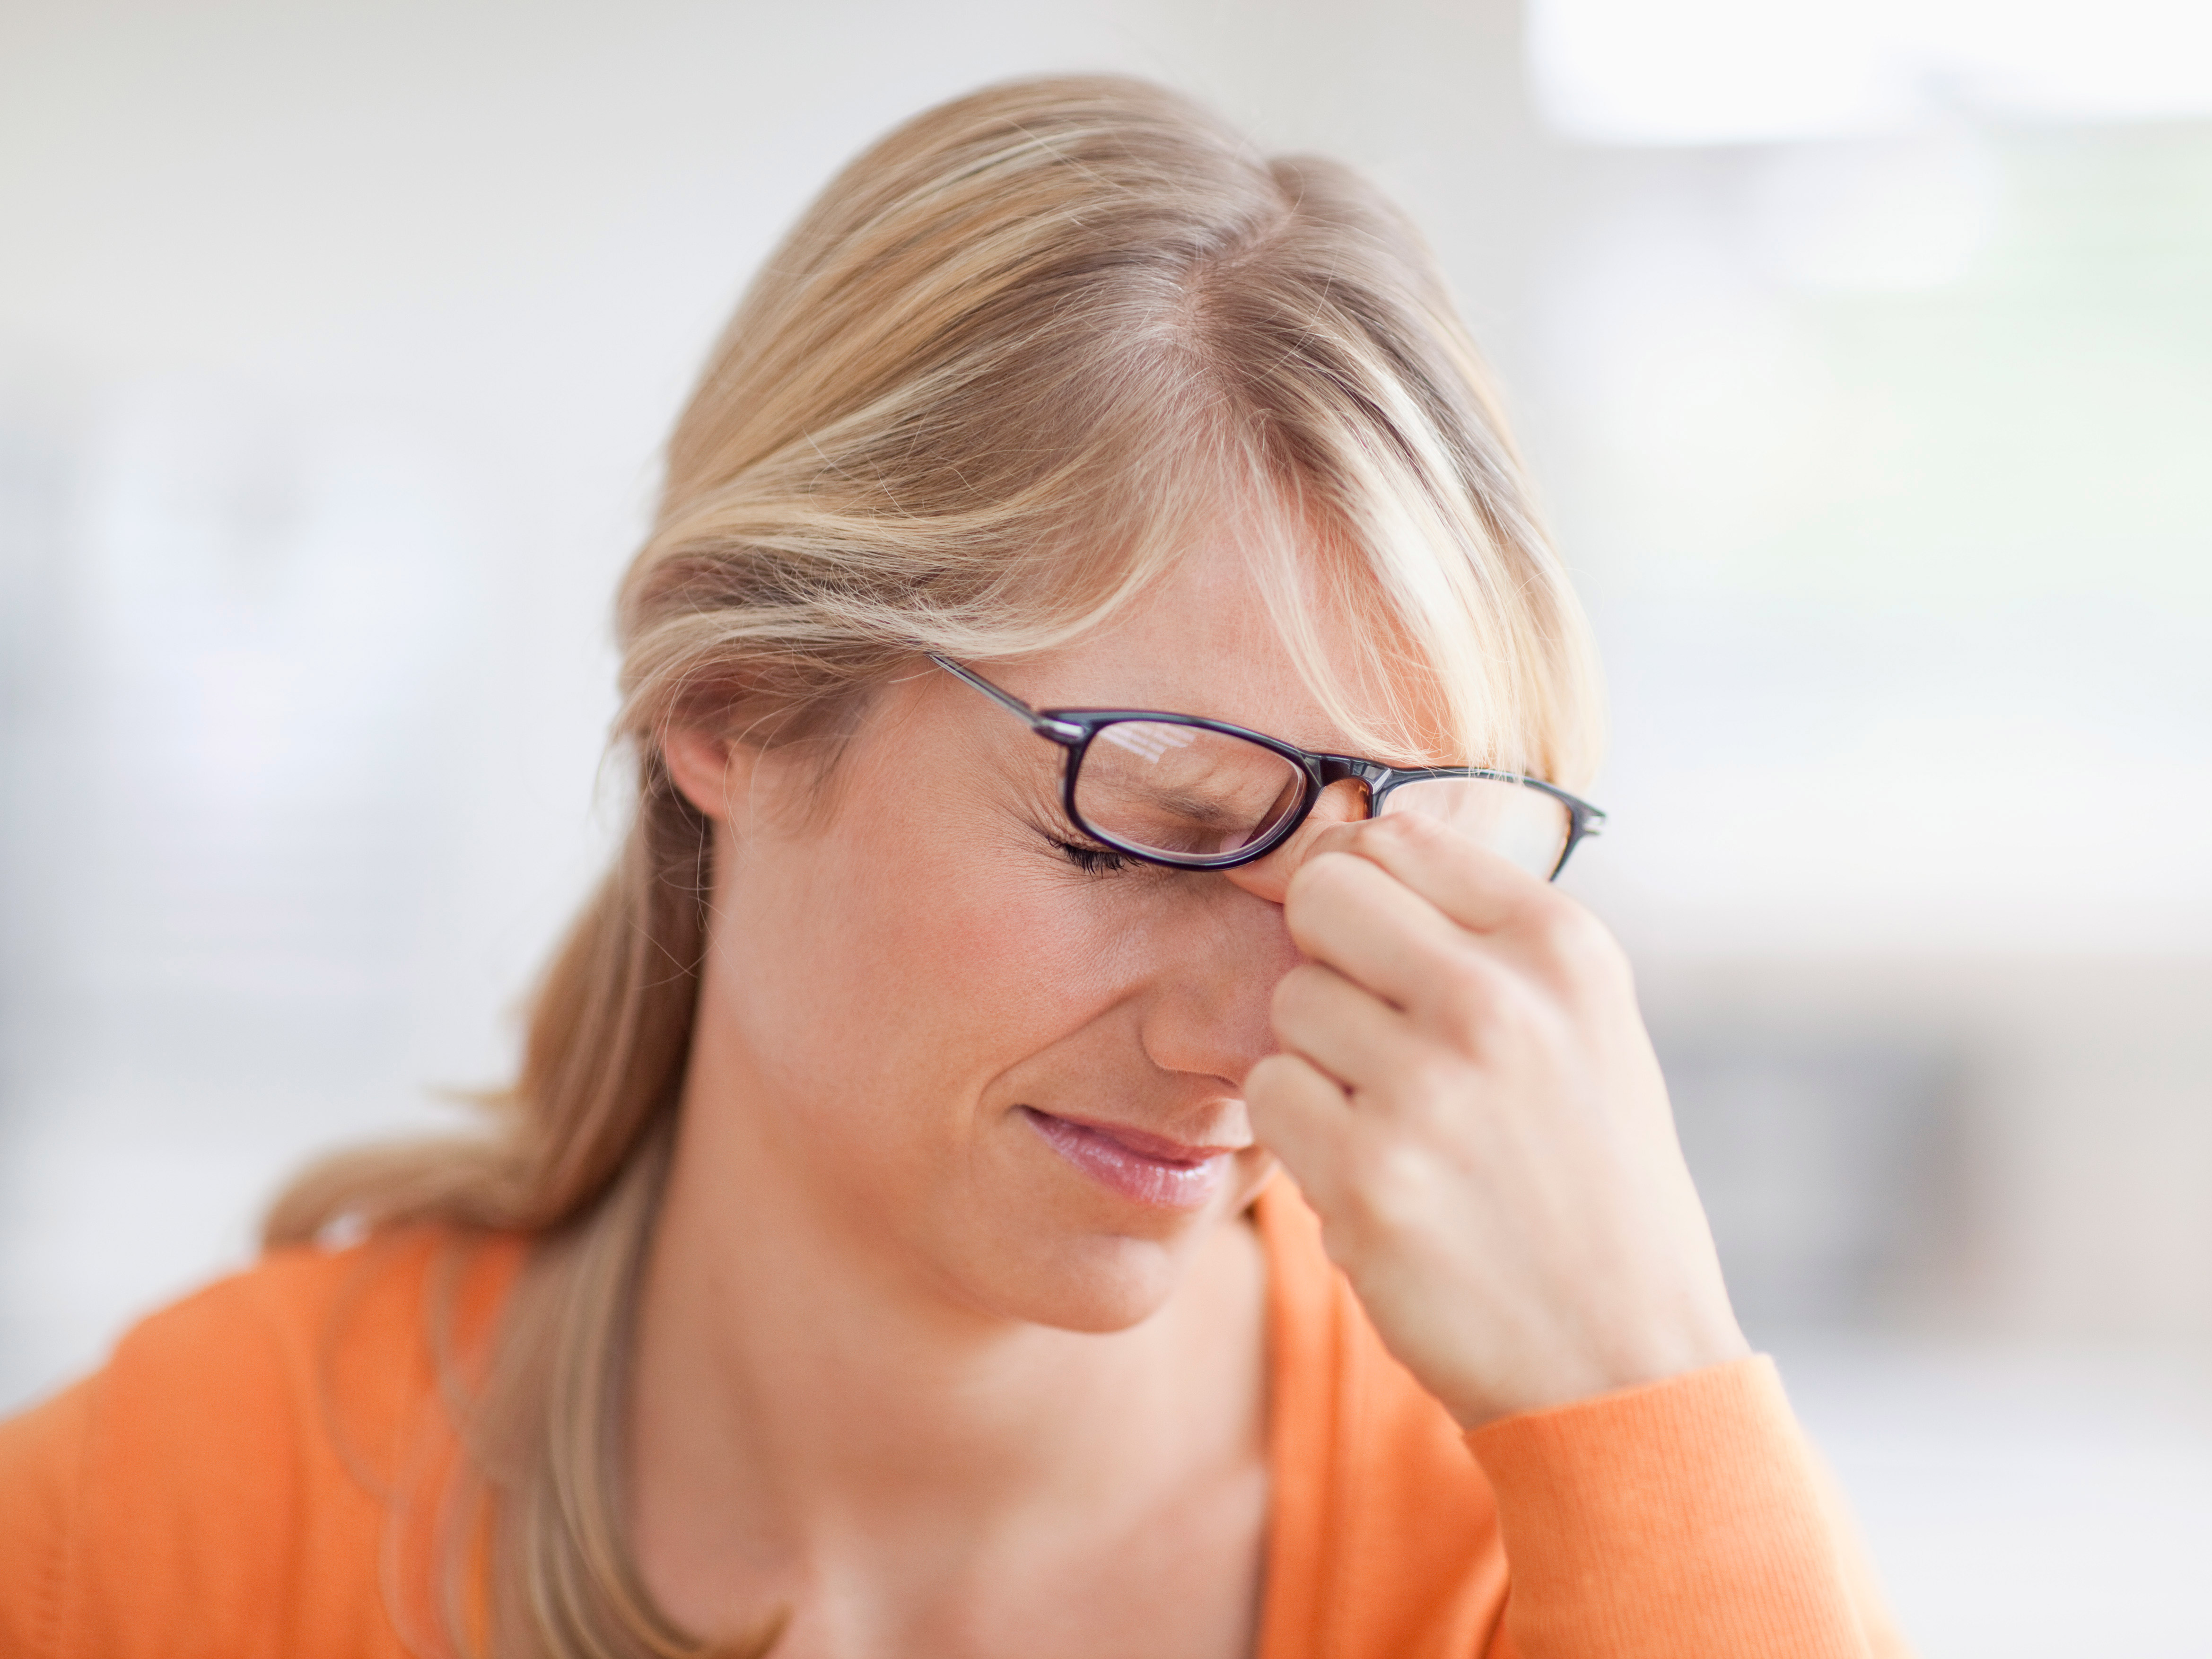 Tired, depressed and hurting? Could be adrenal fatigue